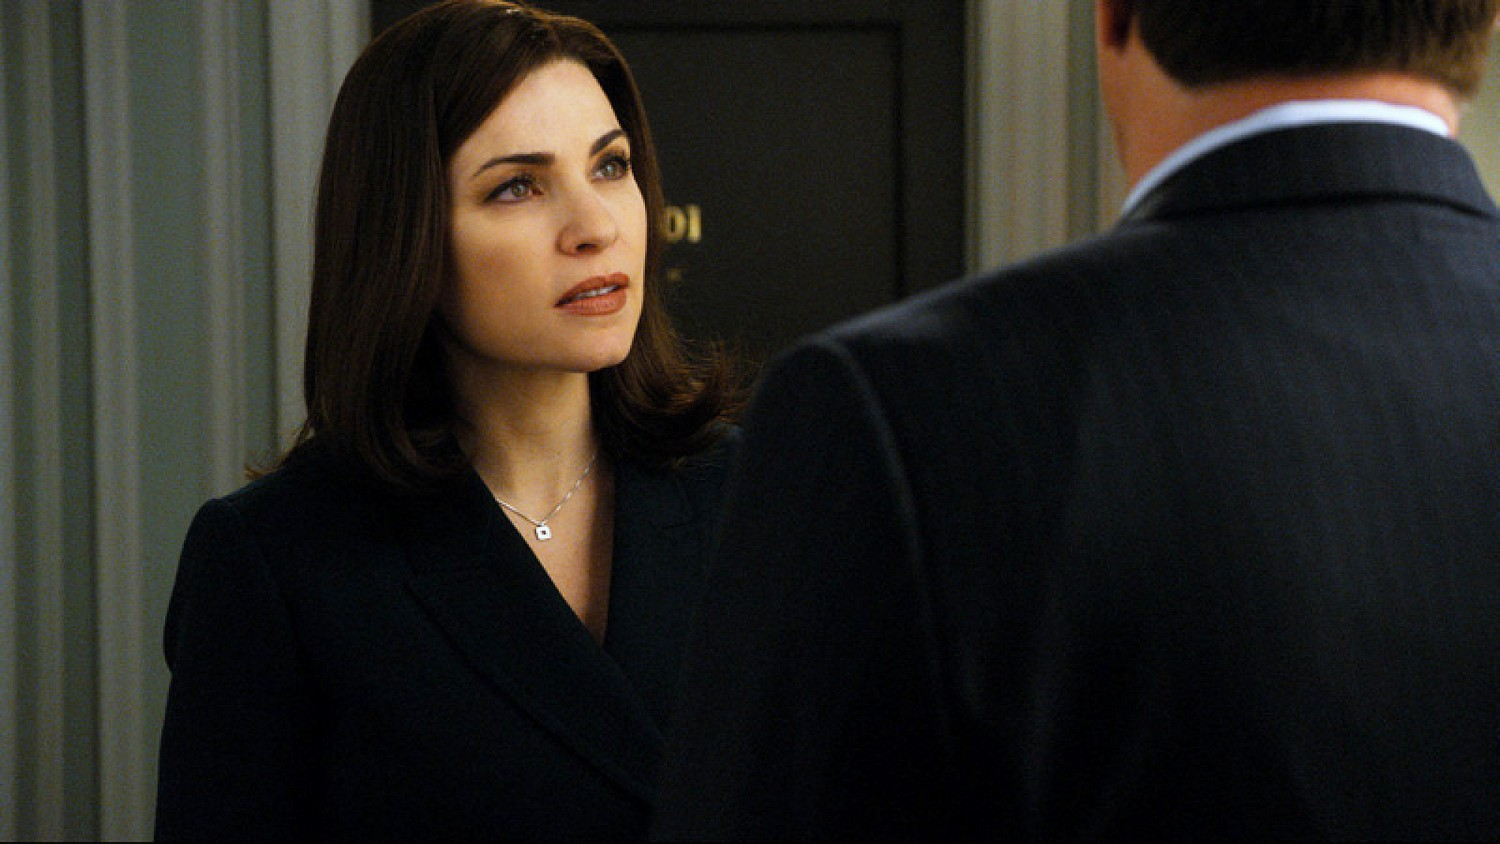 Julianna Margulies Good Wife Julianna Margulies Images